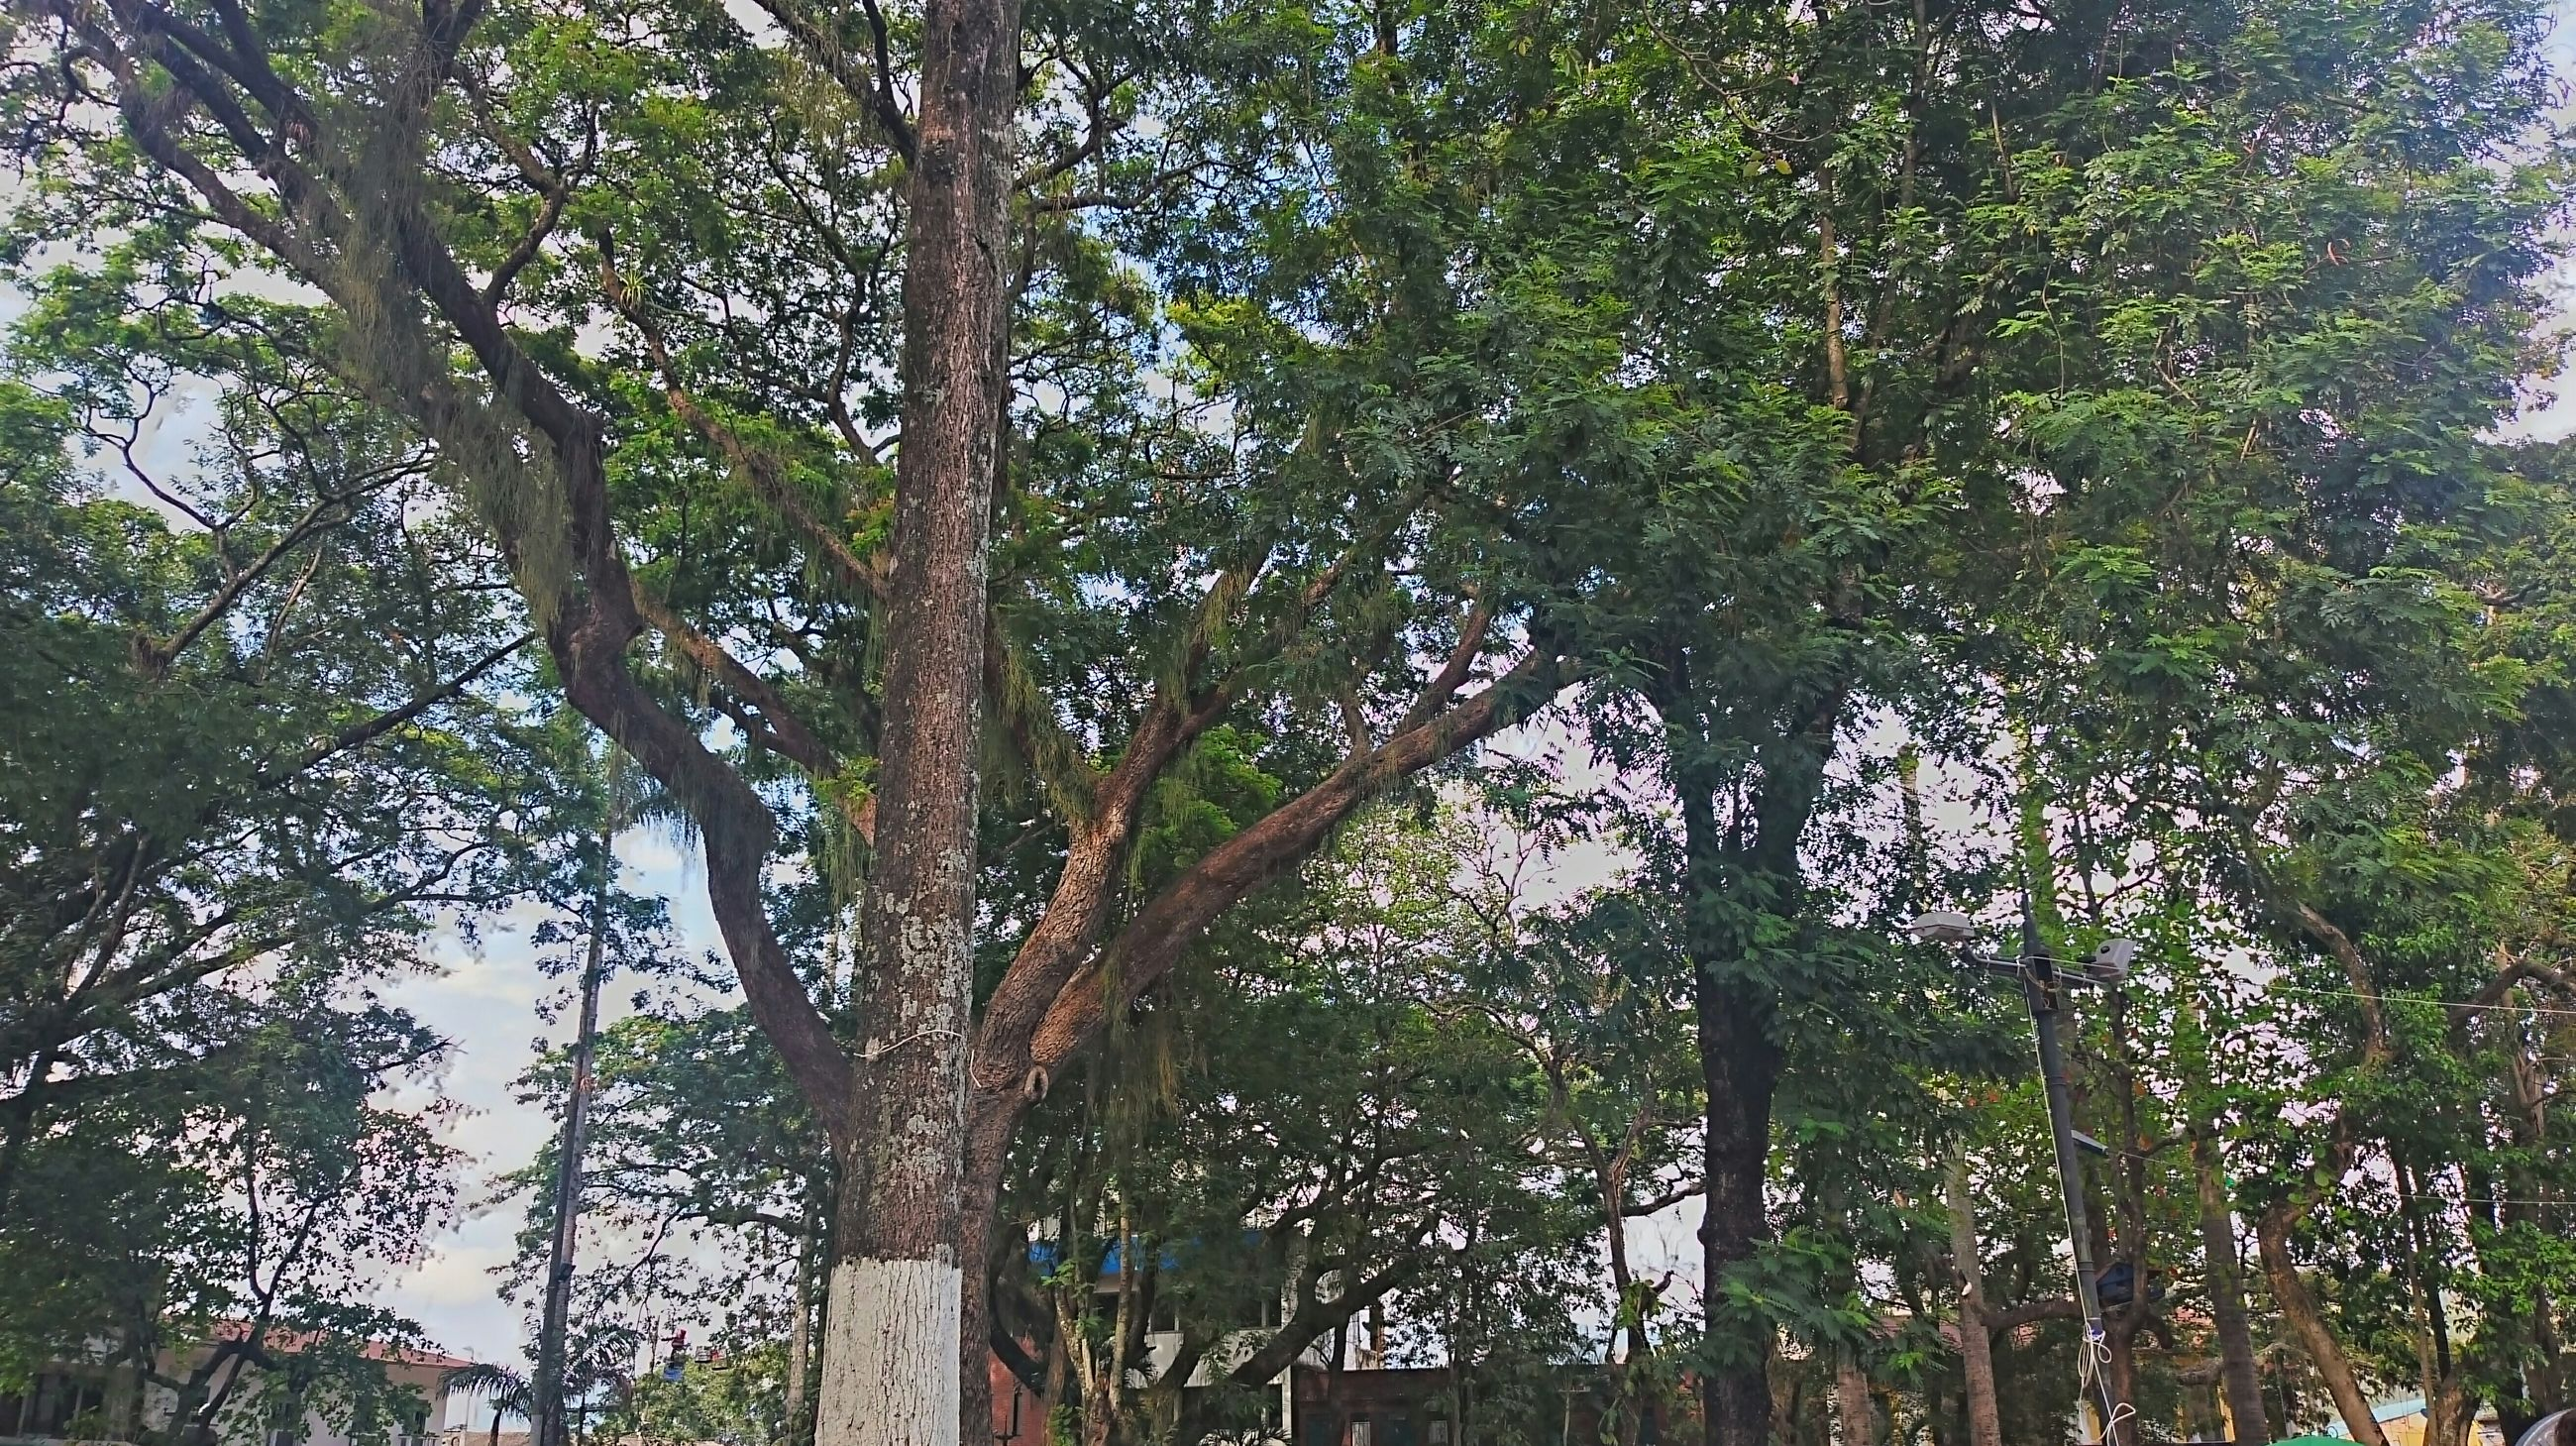 tree, growth, green color, low angle view, branch, tree trunk, tranquility, nature, beauty in nature, lush foliage, day, green, outdoors, sunlight, tranquil scene, palm tree, scenics, forest, no people, sky